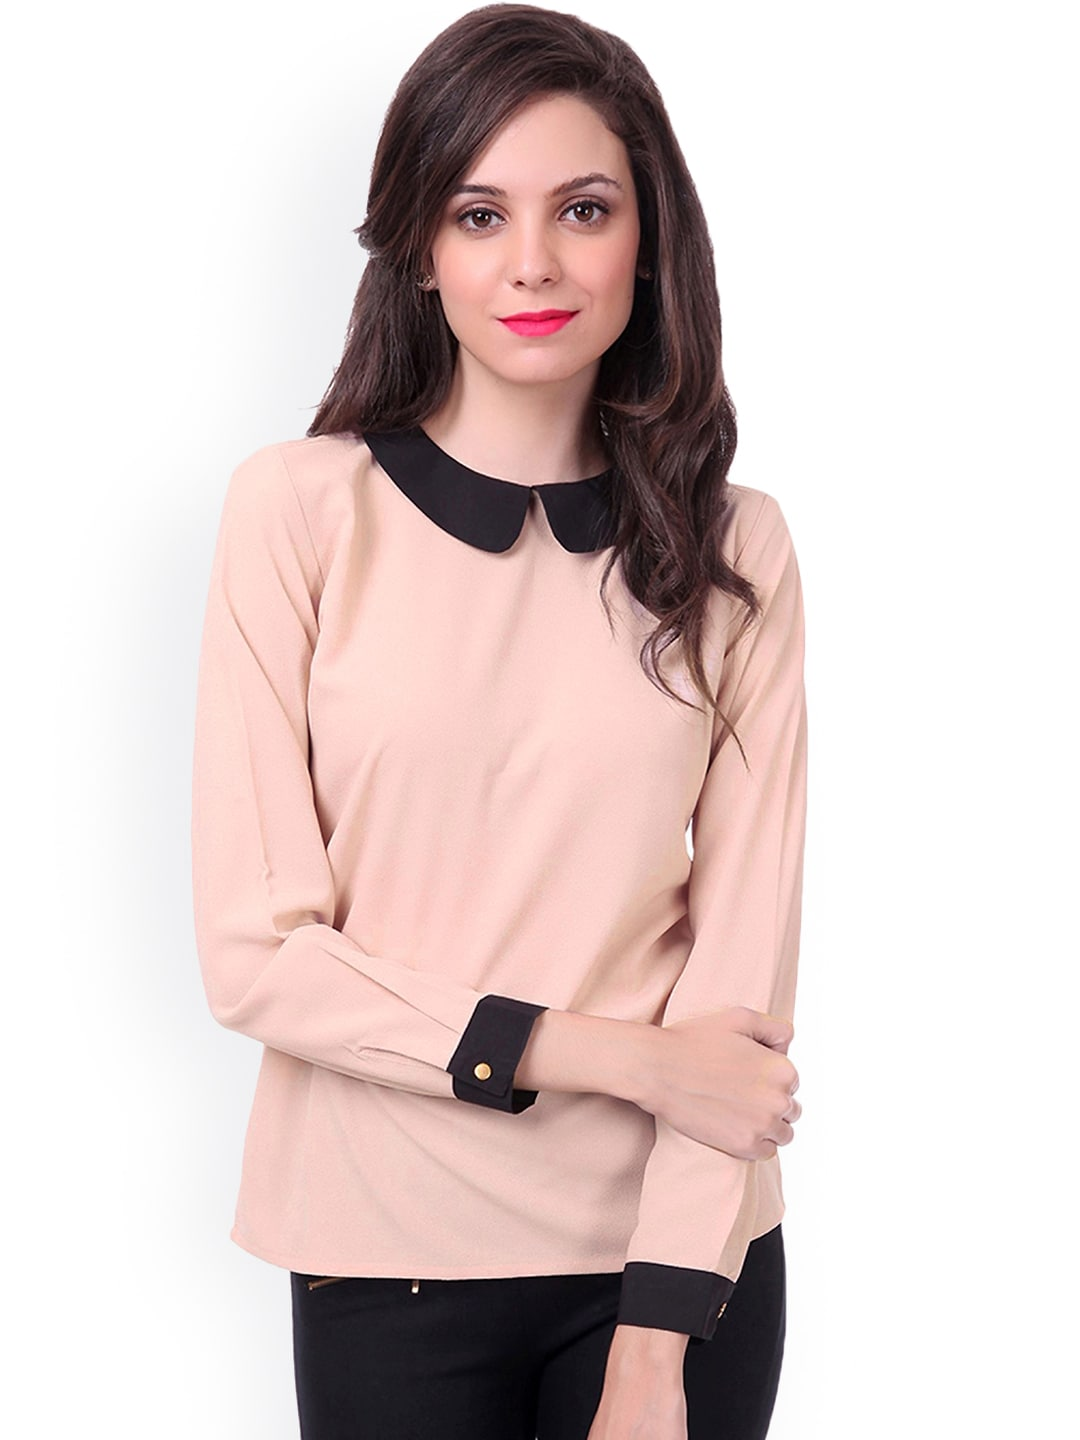 Formal tops for girls on jeans images for Myntra t shirt design